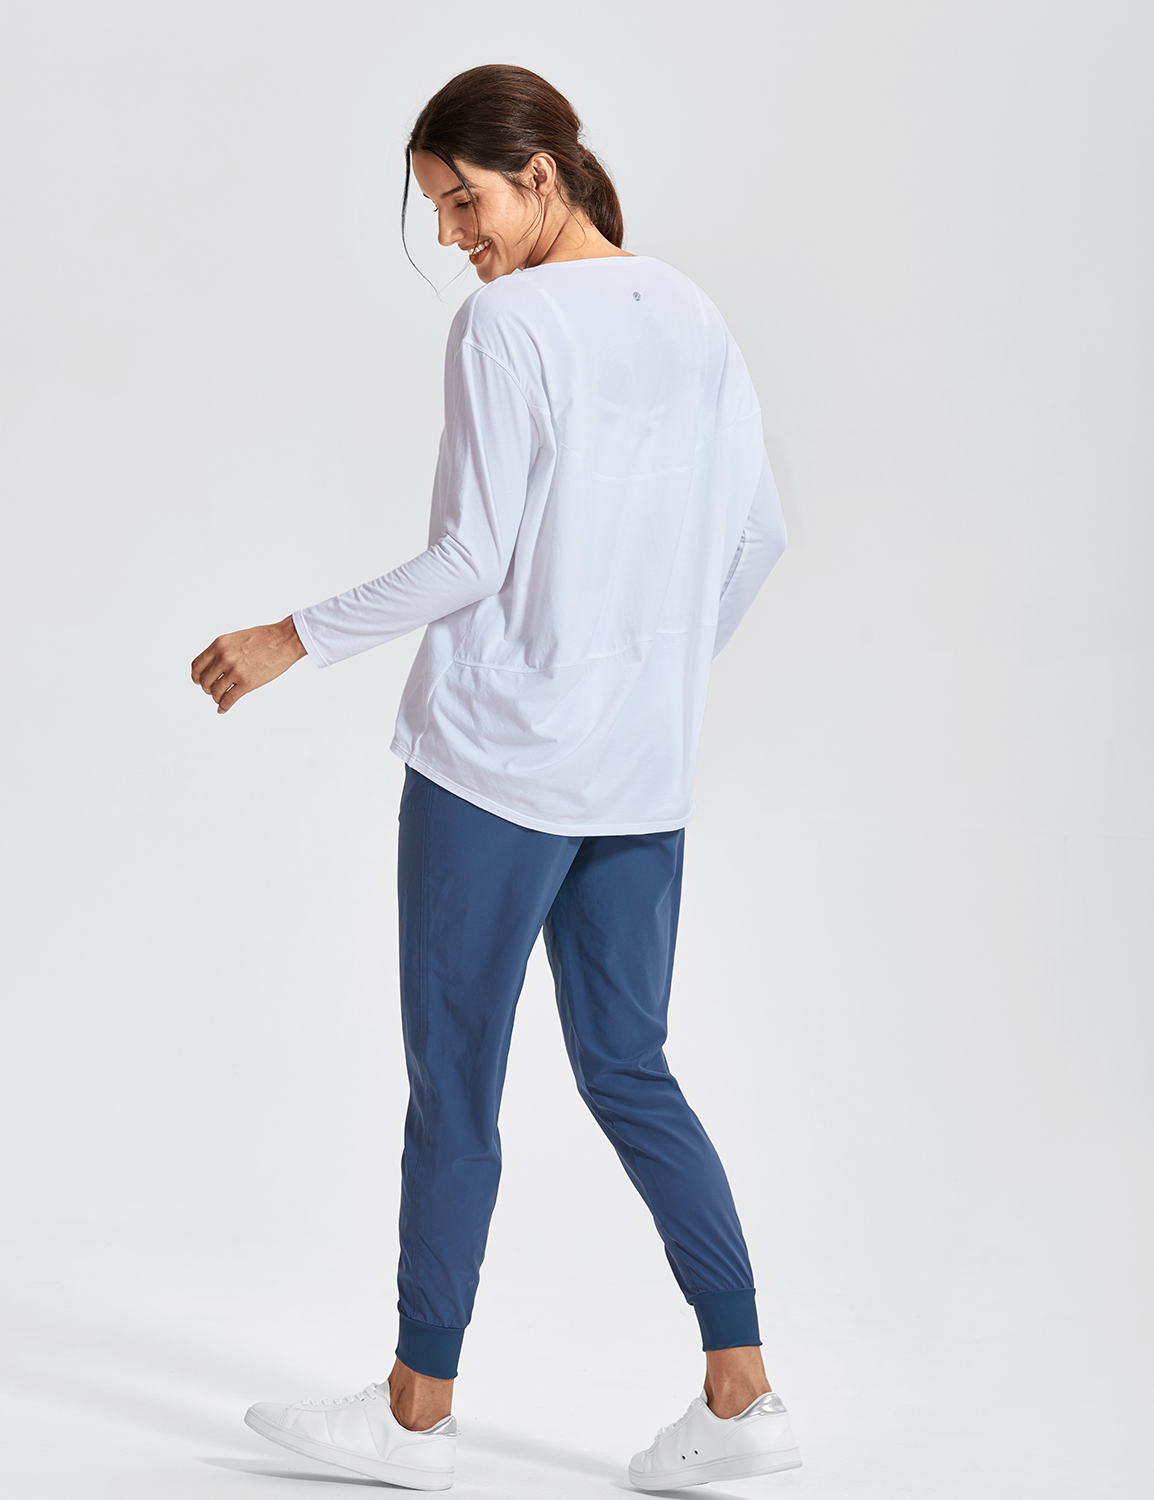 Women/'s Casual Long Sleeves Pima Cotton Workout T-shirt Sports Boat Neck Top